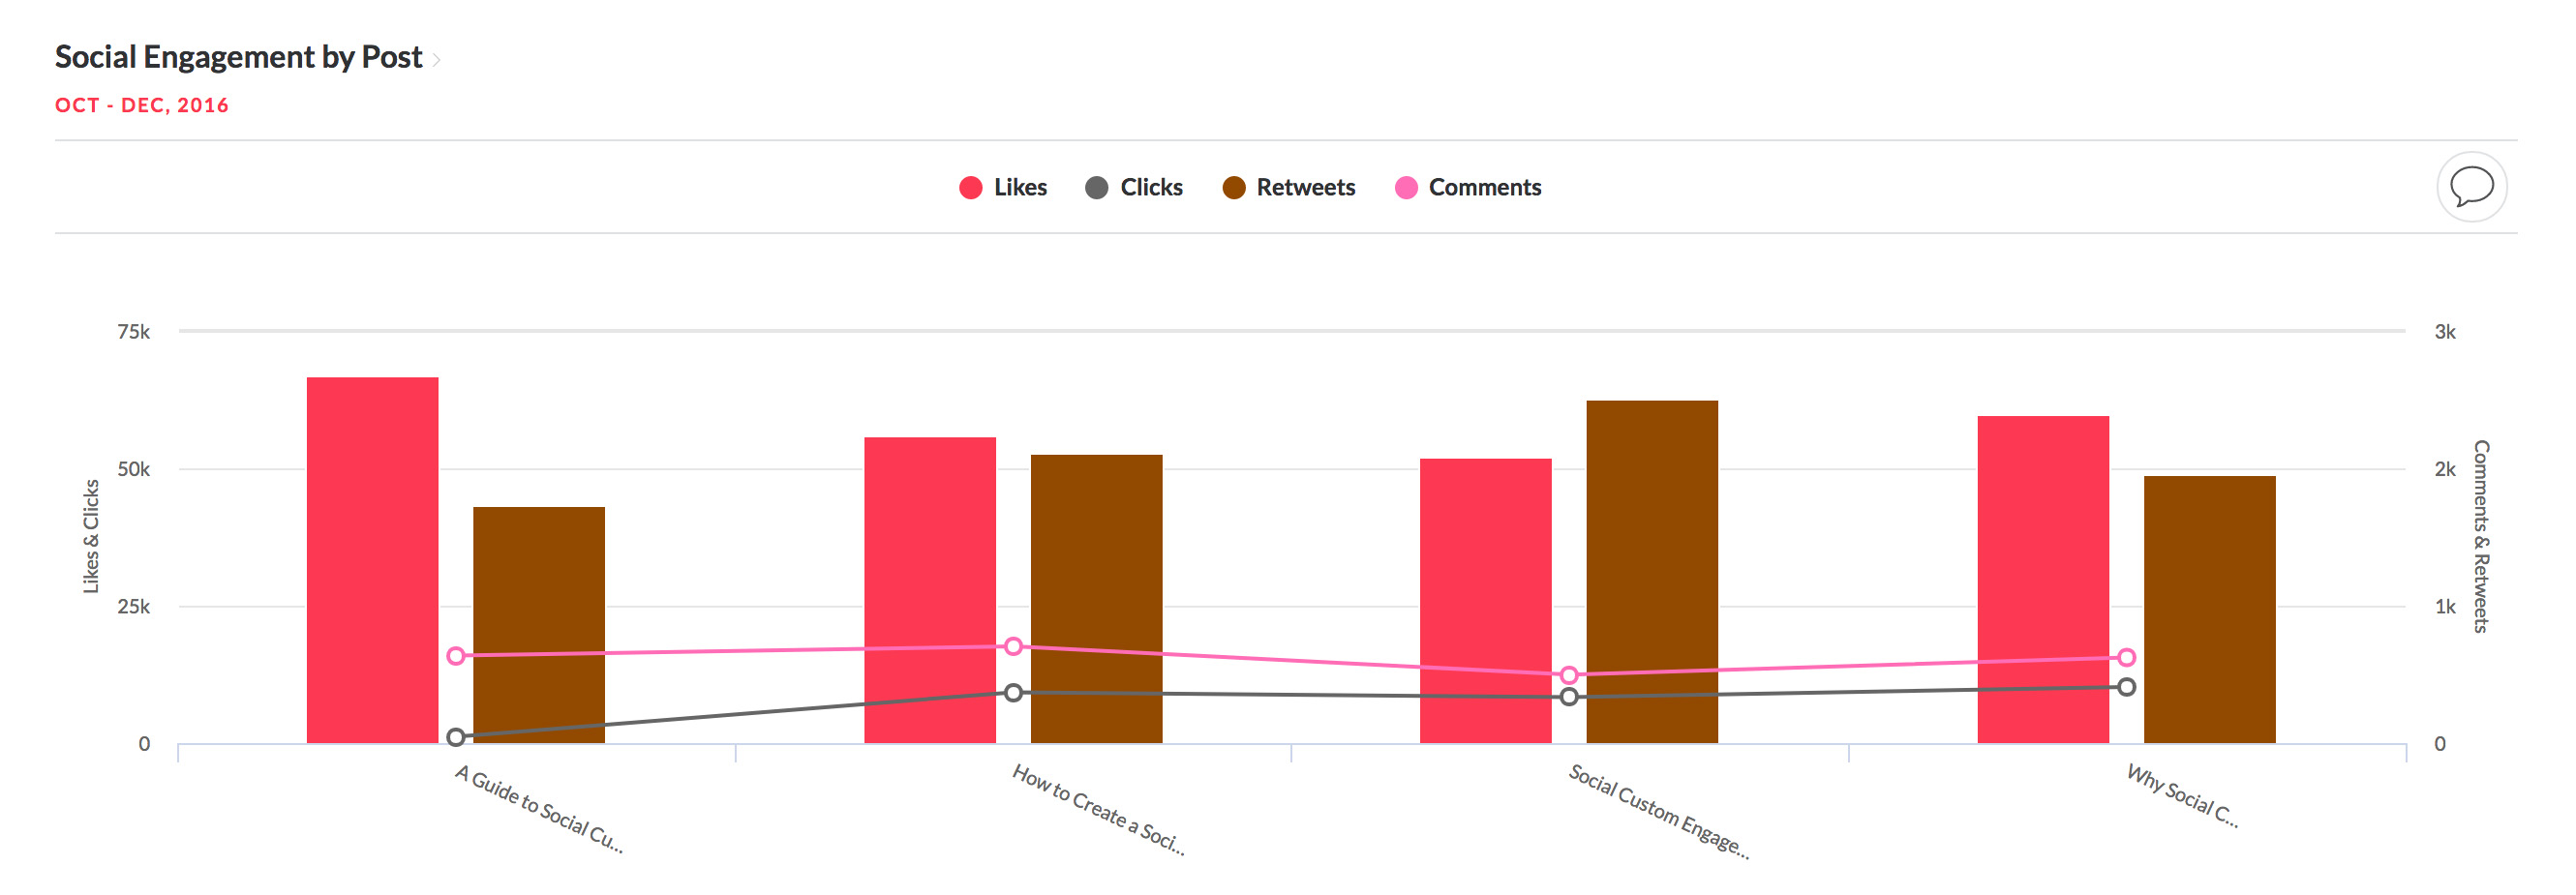 Chart showing Social Engagement by Poste